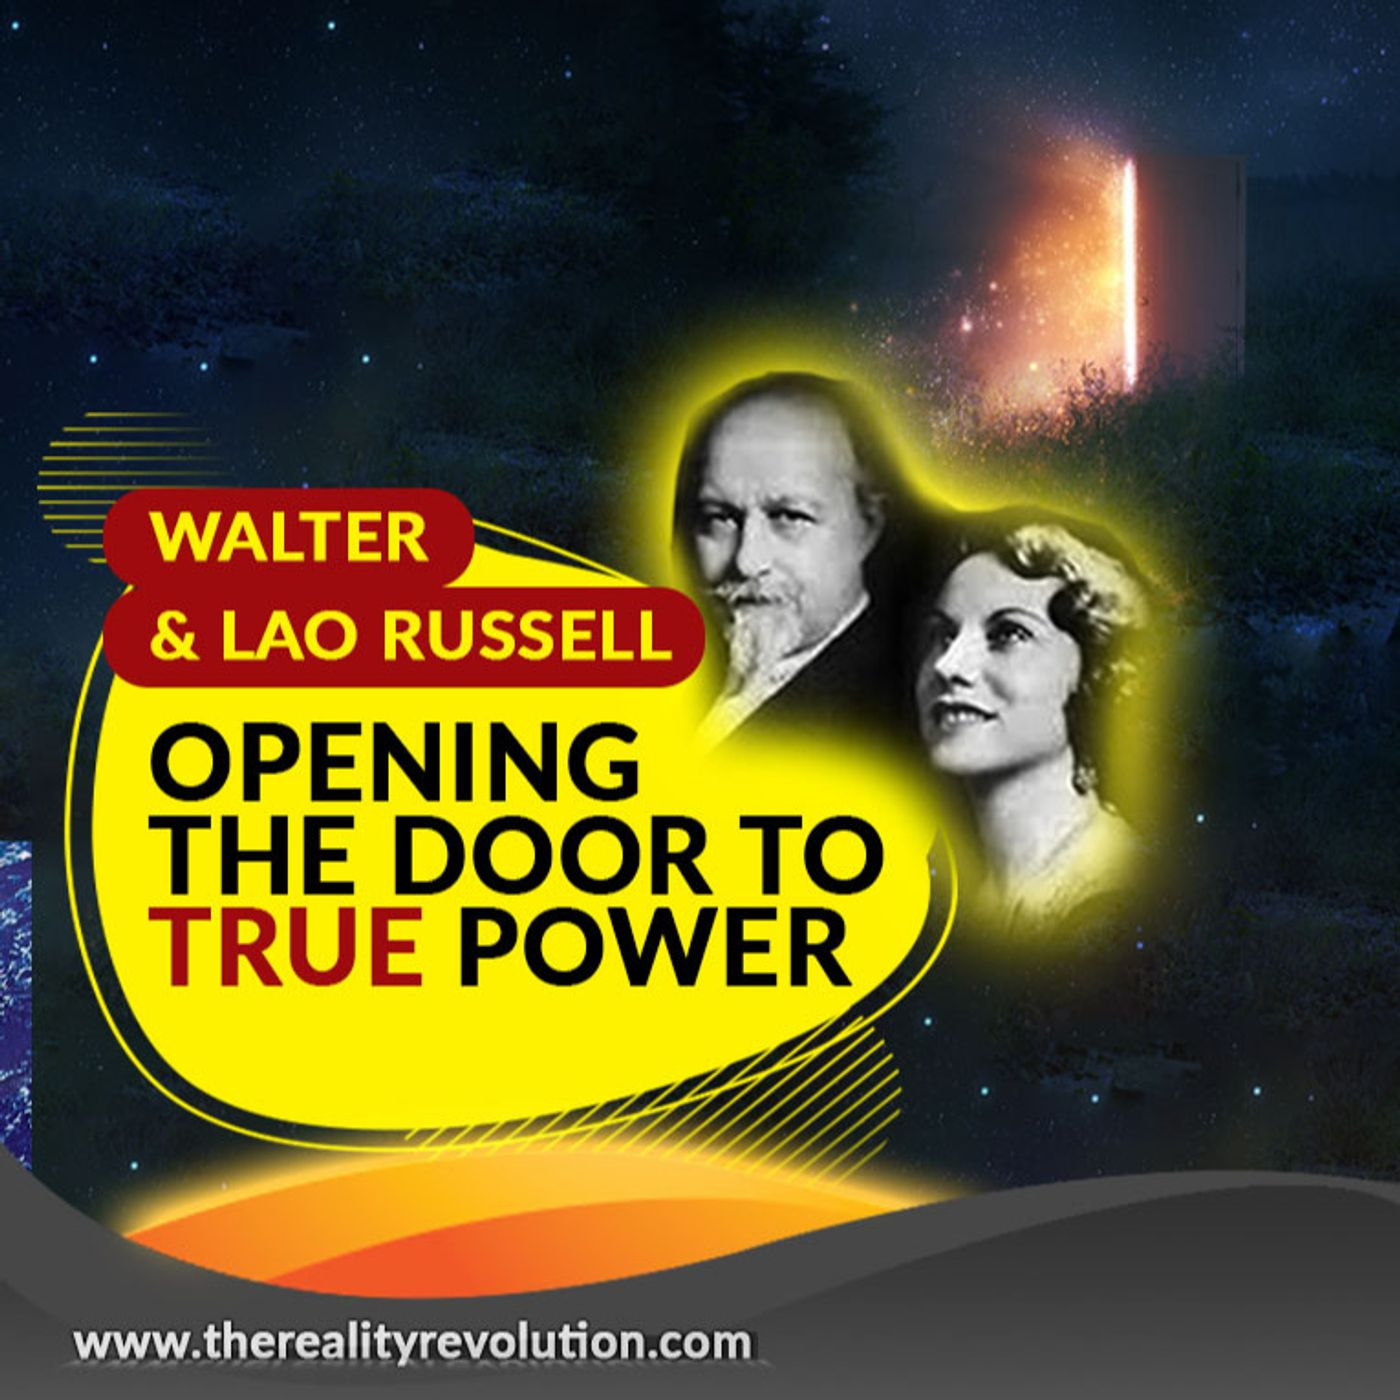 Walter And Lao Russell - Opening The Door To True Power